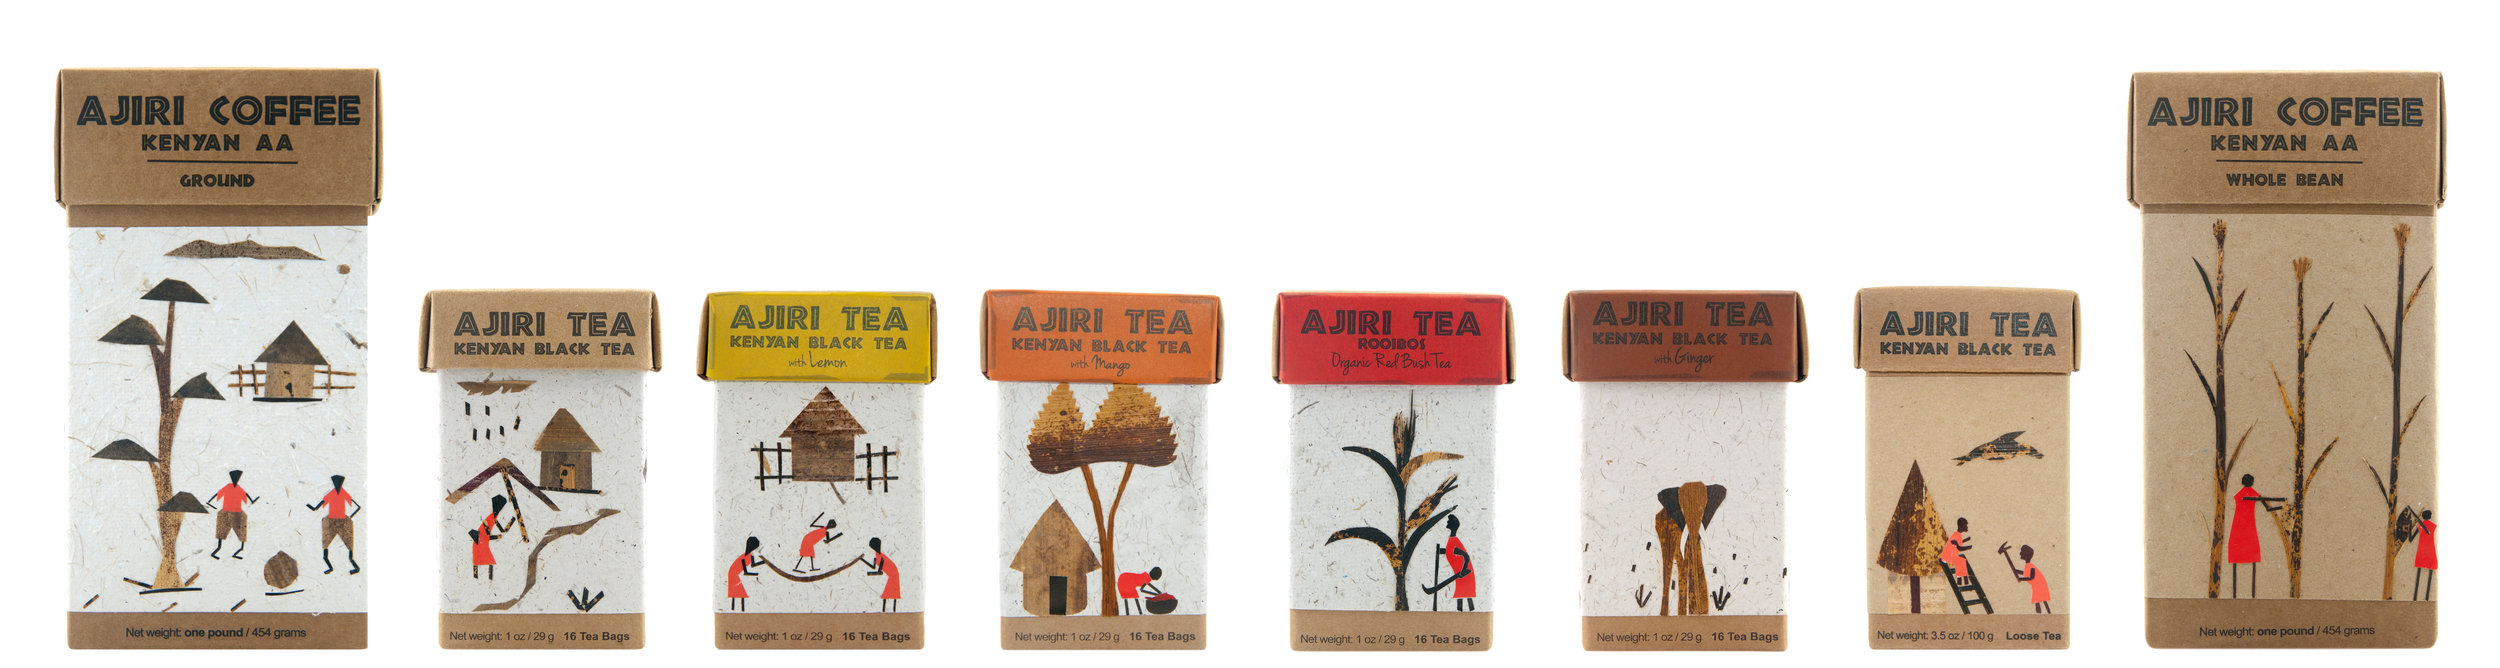 Ajiri Tea & Coffee